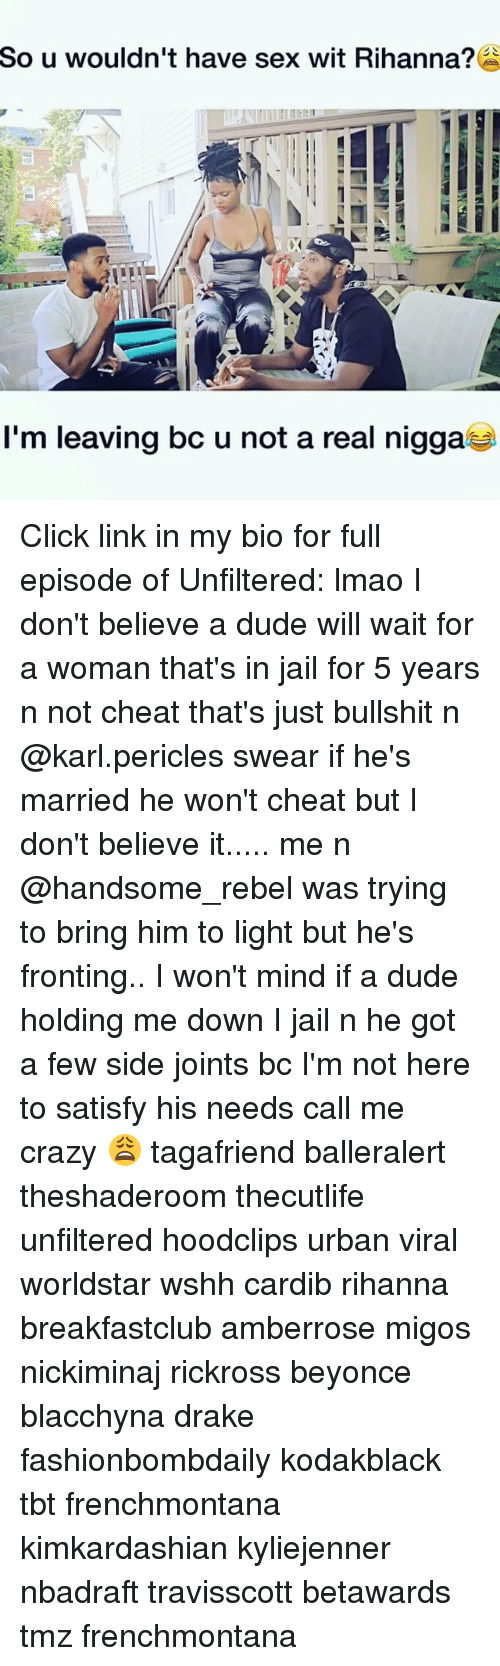 Beyonce, Click, and Crazy: So  u wouldn't have sex wit Rihanna?  I'm leaving bc u not a real nigga Click link in my bio for full episode of Unfiltered: lmao I don't believe a dude will wait for a woman that's in jail for 5 years n not cheat that's just bullshit n @karl.pericles swear if he's married he won't cheat but I don't believe it..... me n @handsome_rebel was trying to bring him to light but he's fronting.. I won't mind if a dude holding me down I jail n he got a few side joints bc I'm not here to satisfy his needs call me crazy 😩 tagafriend balleralert theshaderoom thecutlife unfiltered hoodclips urban viral worldstar wshh cardib rihanna breakfastclub amberrose migos nickiminaj rickross beyonce blacchyna drake fashionbombdaily kodakblack tbt frenchmontana kimkardashian kyliejenner nbadraft travisscott betawards tmz frenchmontana